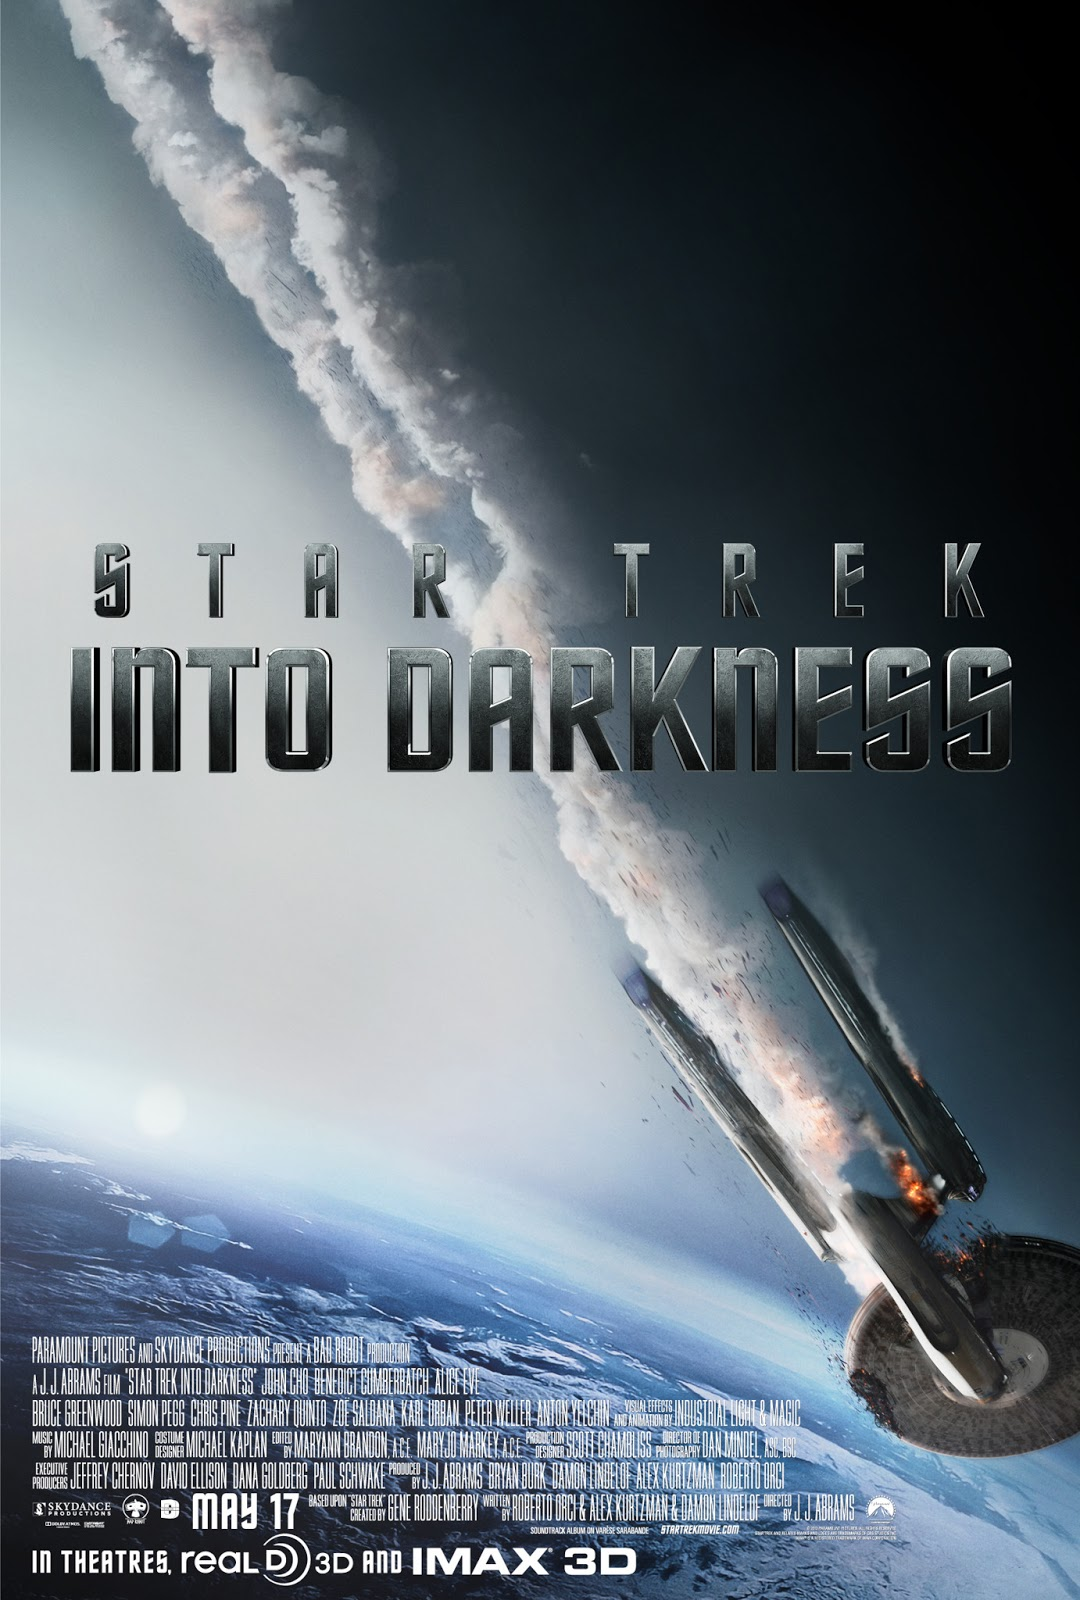 The Movie Poster for Stark Trek Into Darkness.  The Starship Enterprise (or one of the same class) is going down in flames.